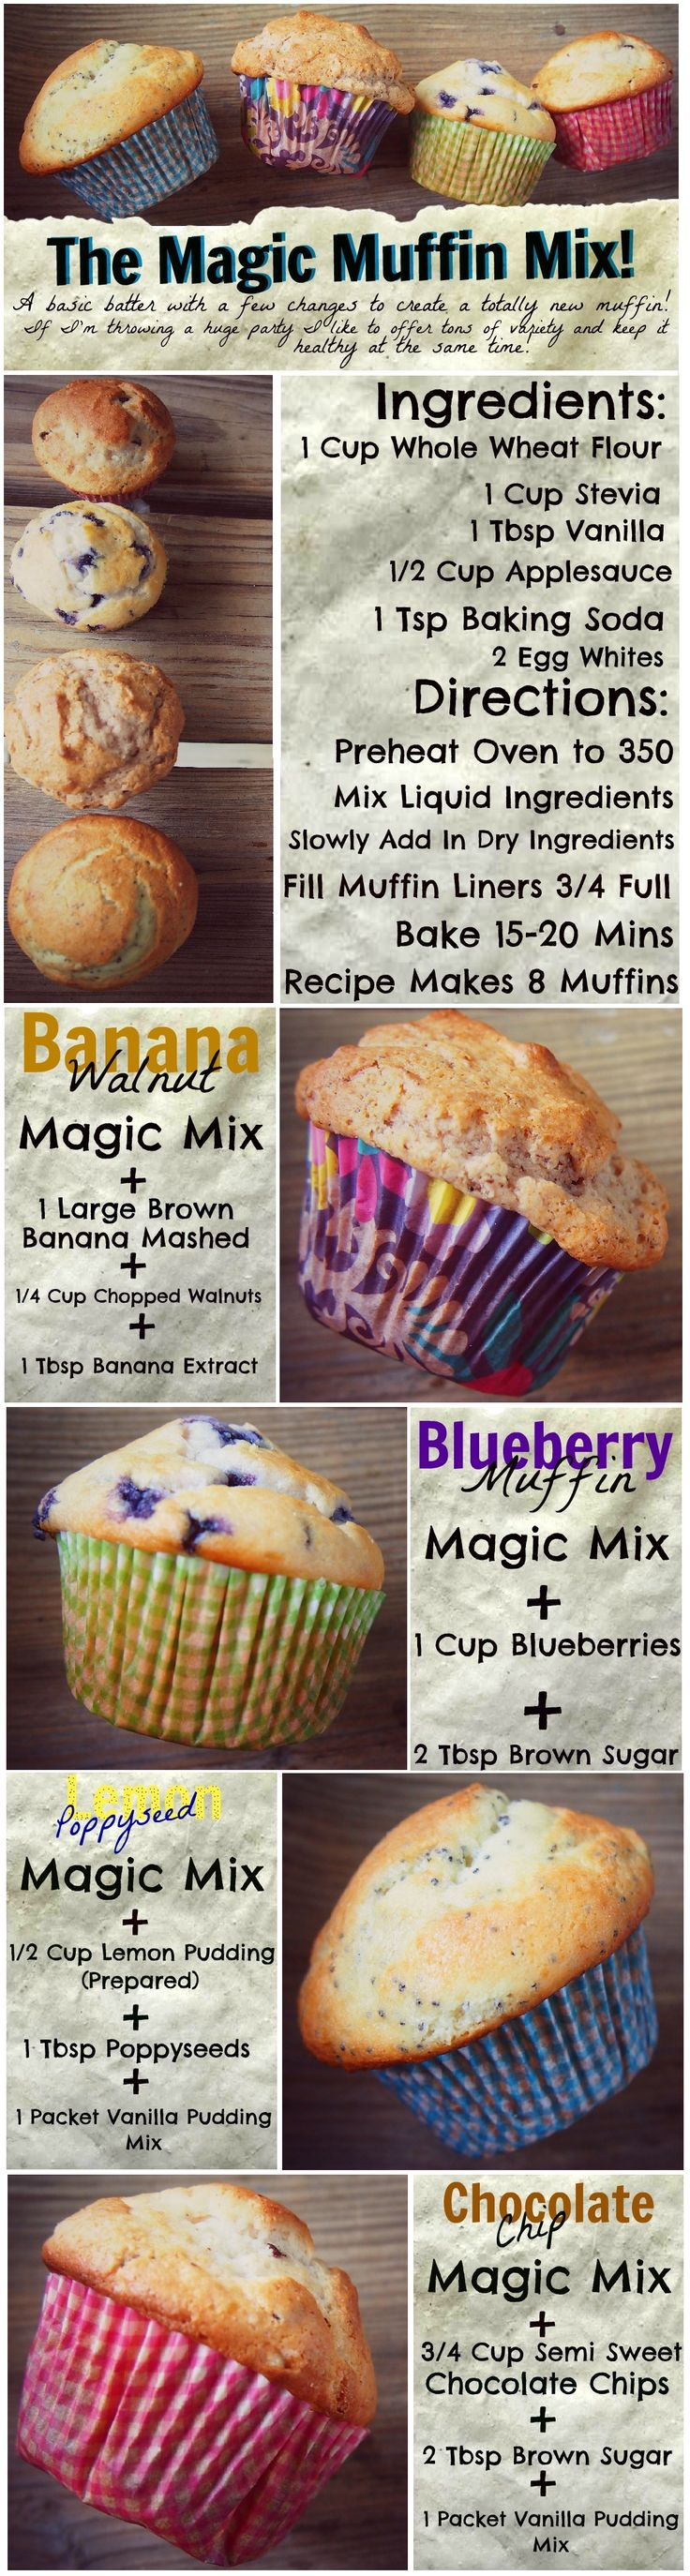 The Magic Muffin Mix1 Recipe for 4 Different Muffins. Cool!